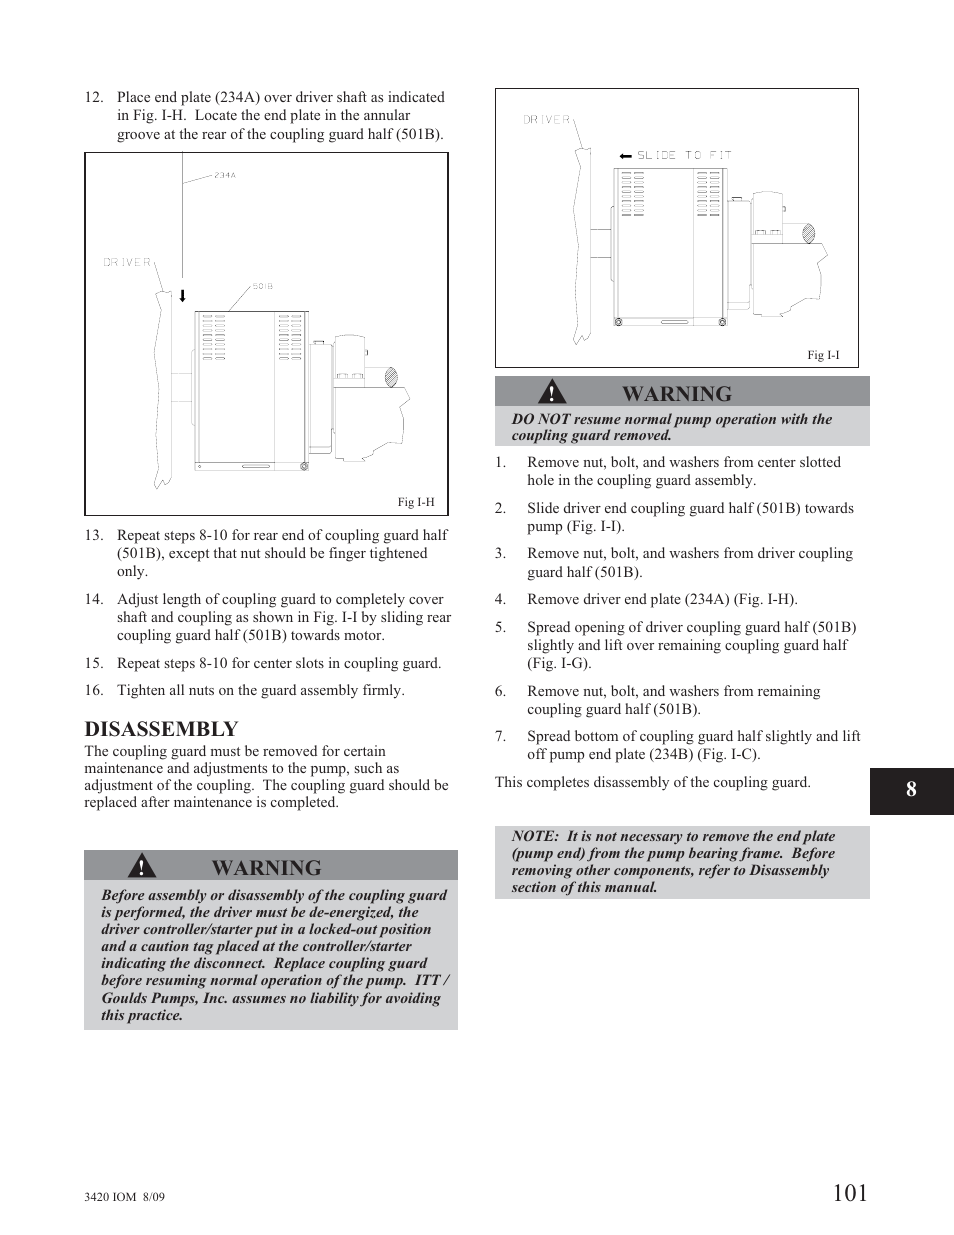 Disassembly, Warning | Goulds Pumps 3420 - IOM User Manual | Page